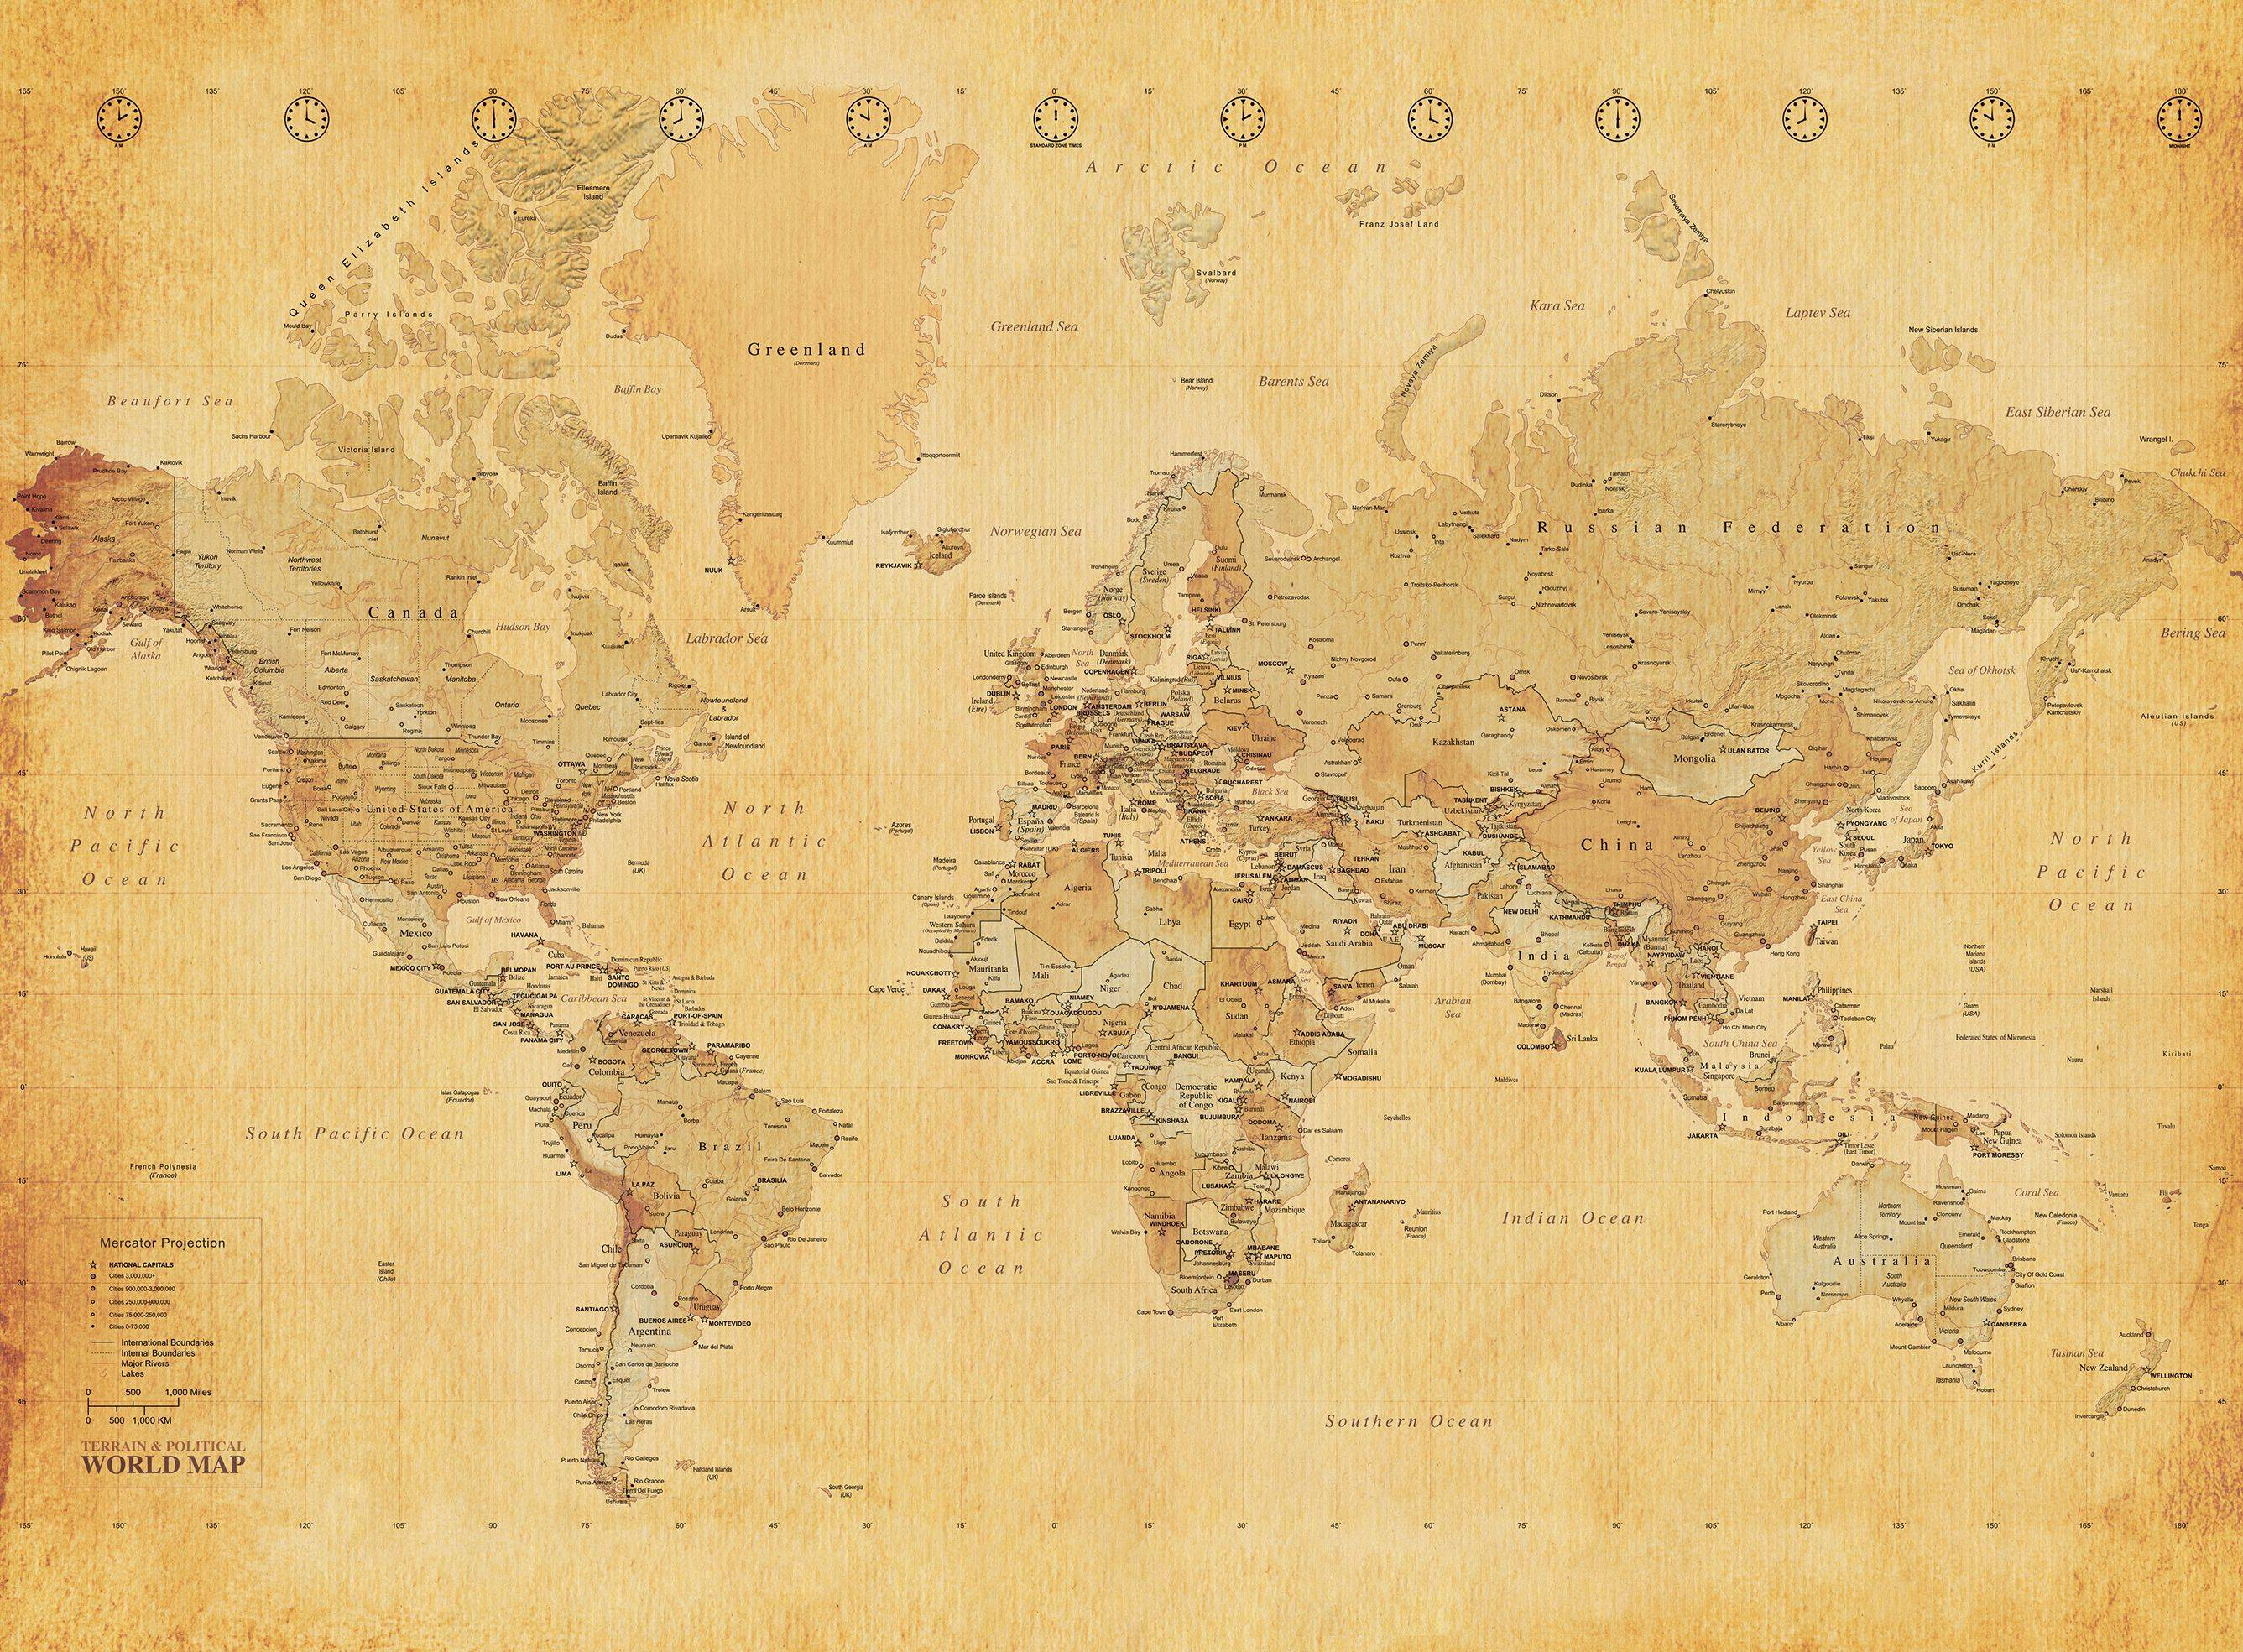 World Map Wall Paper vintage map wallpapers - wallpaper cave